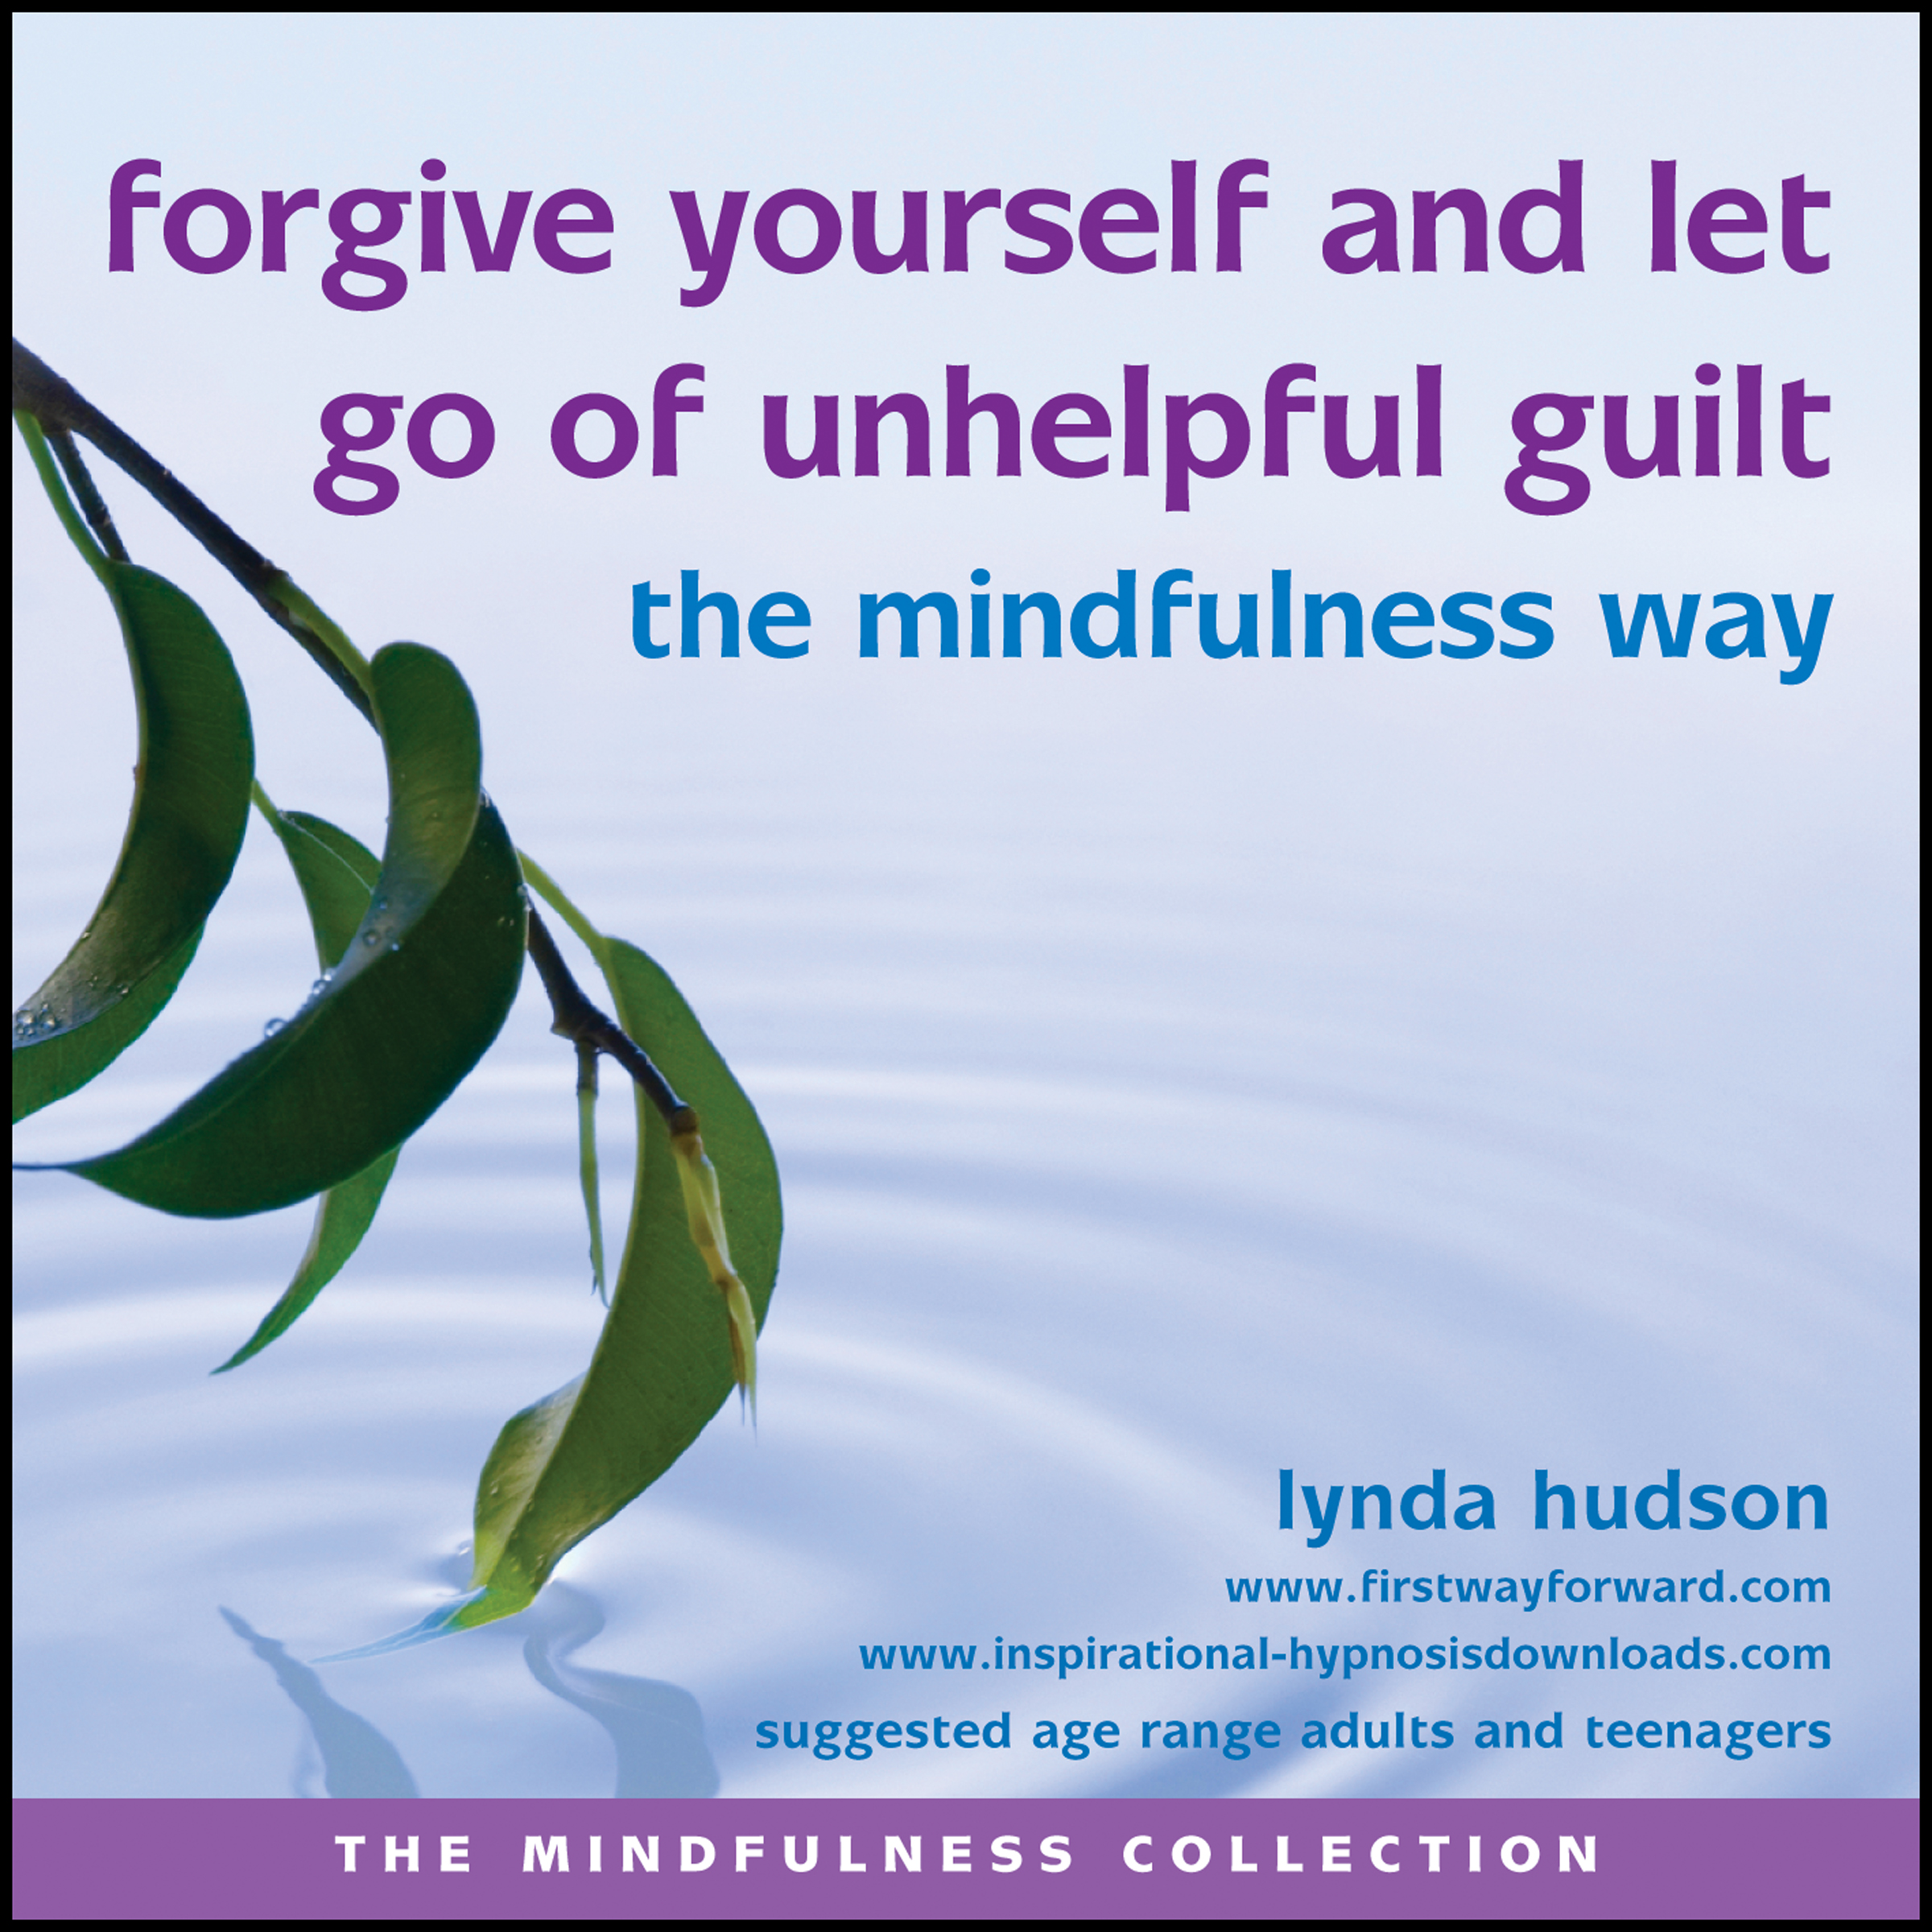 Forgive yourself the mindfulness way